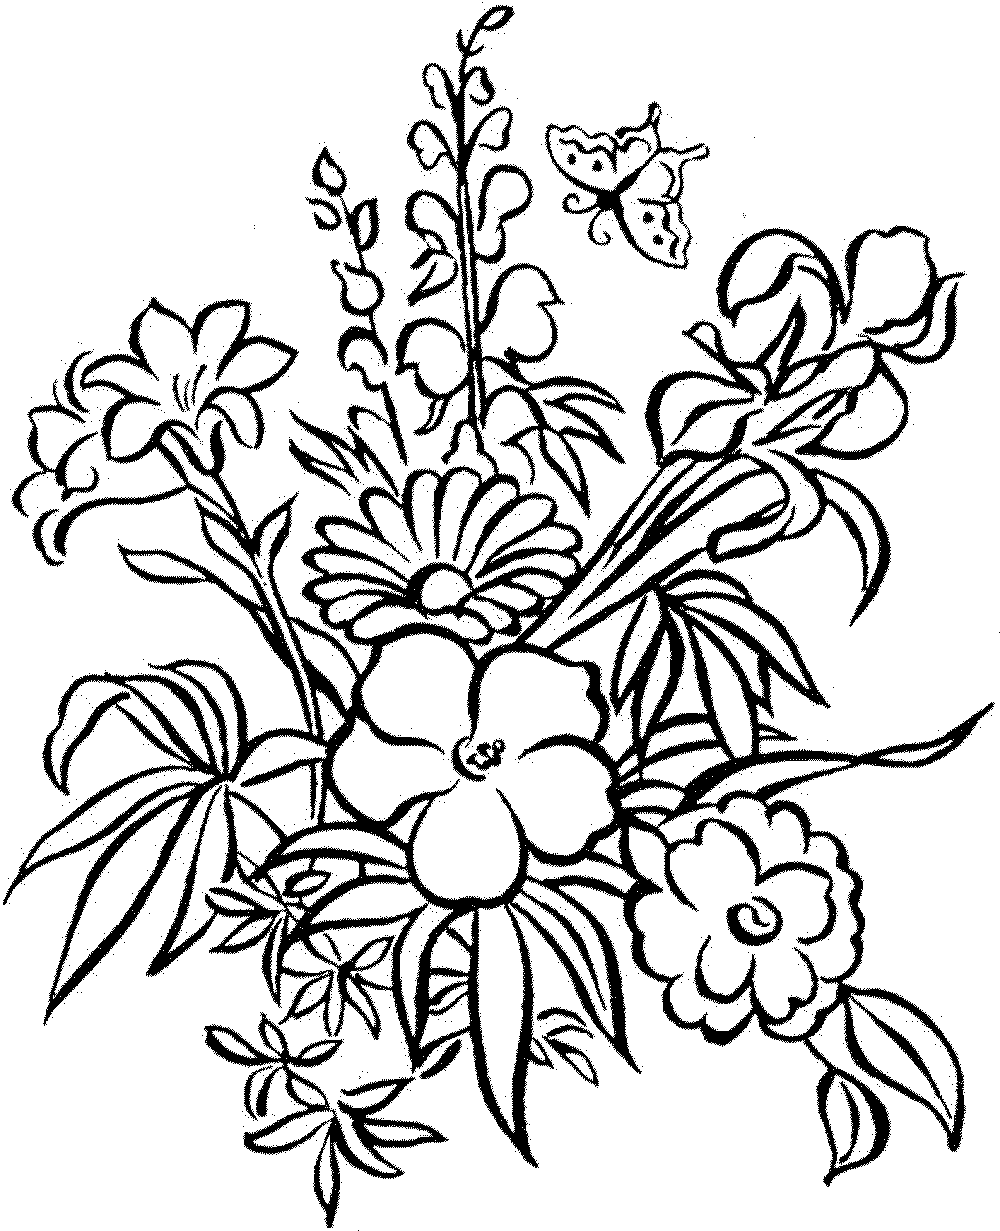 free flower coloring sheets free printable flower coloring pages for kids best coloring free flower sheets